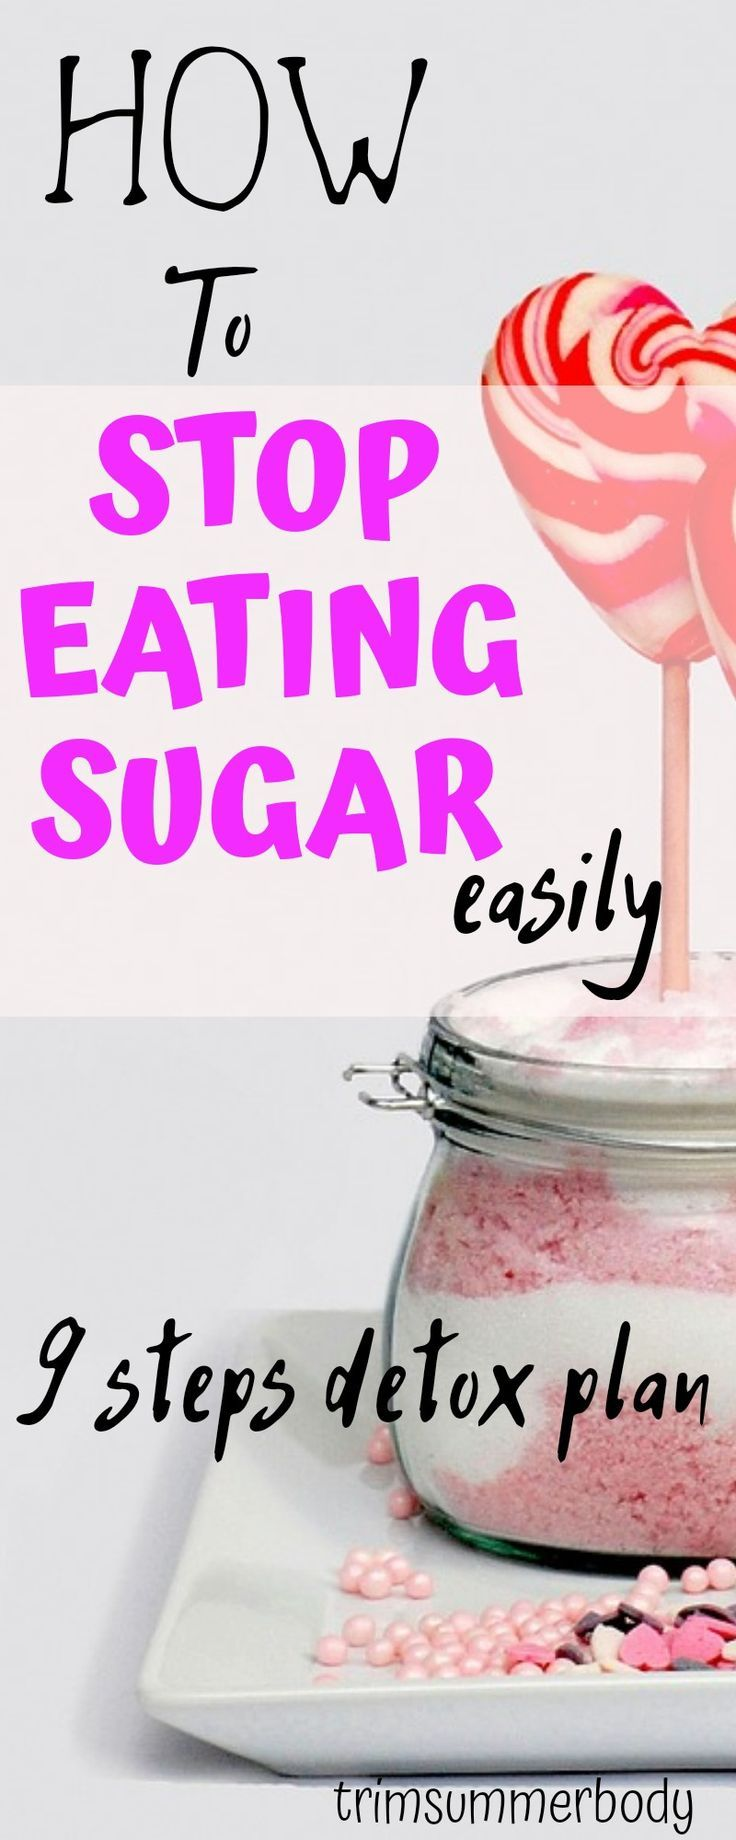 Stop sugar addiction and stop eating sugar with this detox plan - #addiction #Detox #Eating #gewichtverlieren #gewichtverlierenmotivation #gewichtverlierenschnell #loseweight #loseweightfood #loseweightinaweek #plan #Stop #sugar #sugardetoxplan